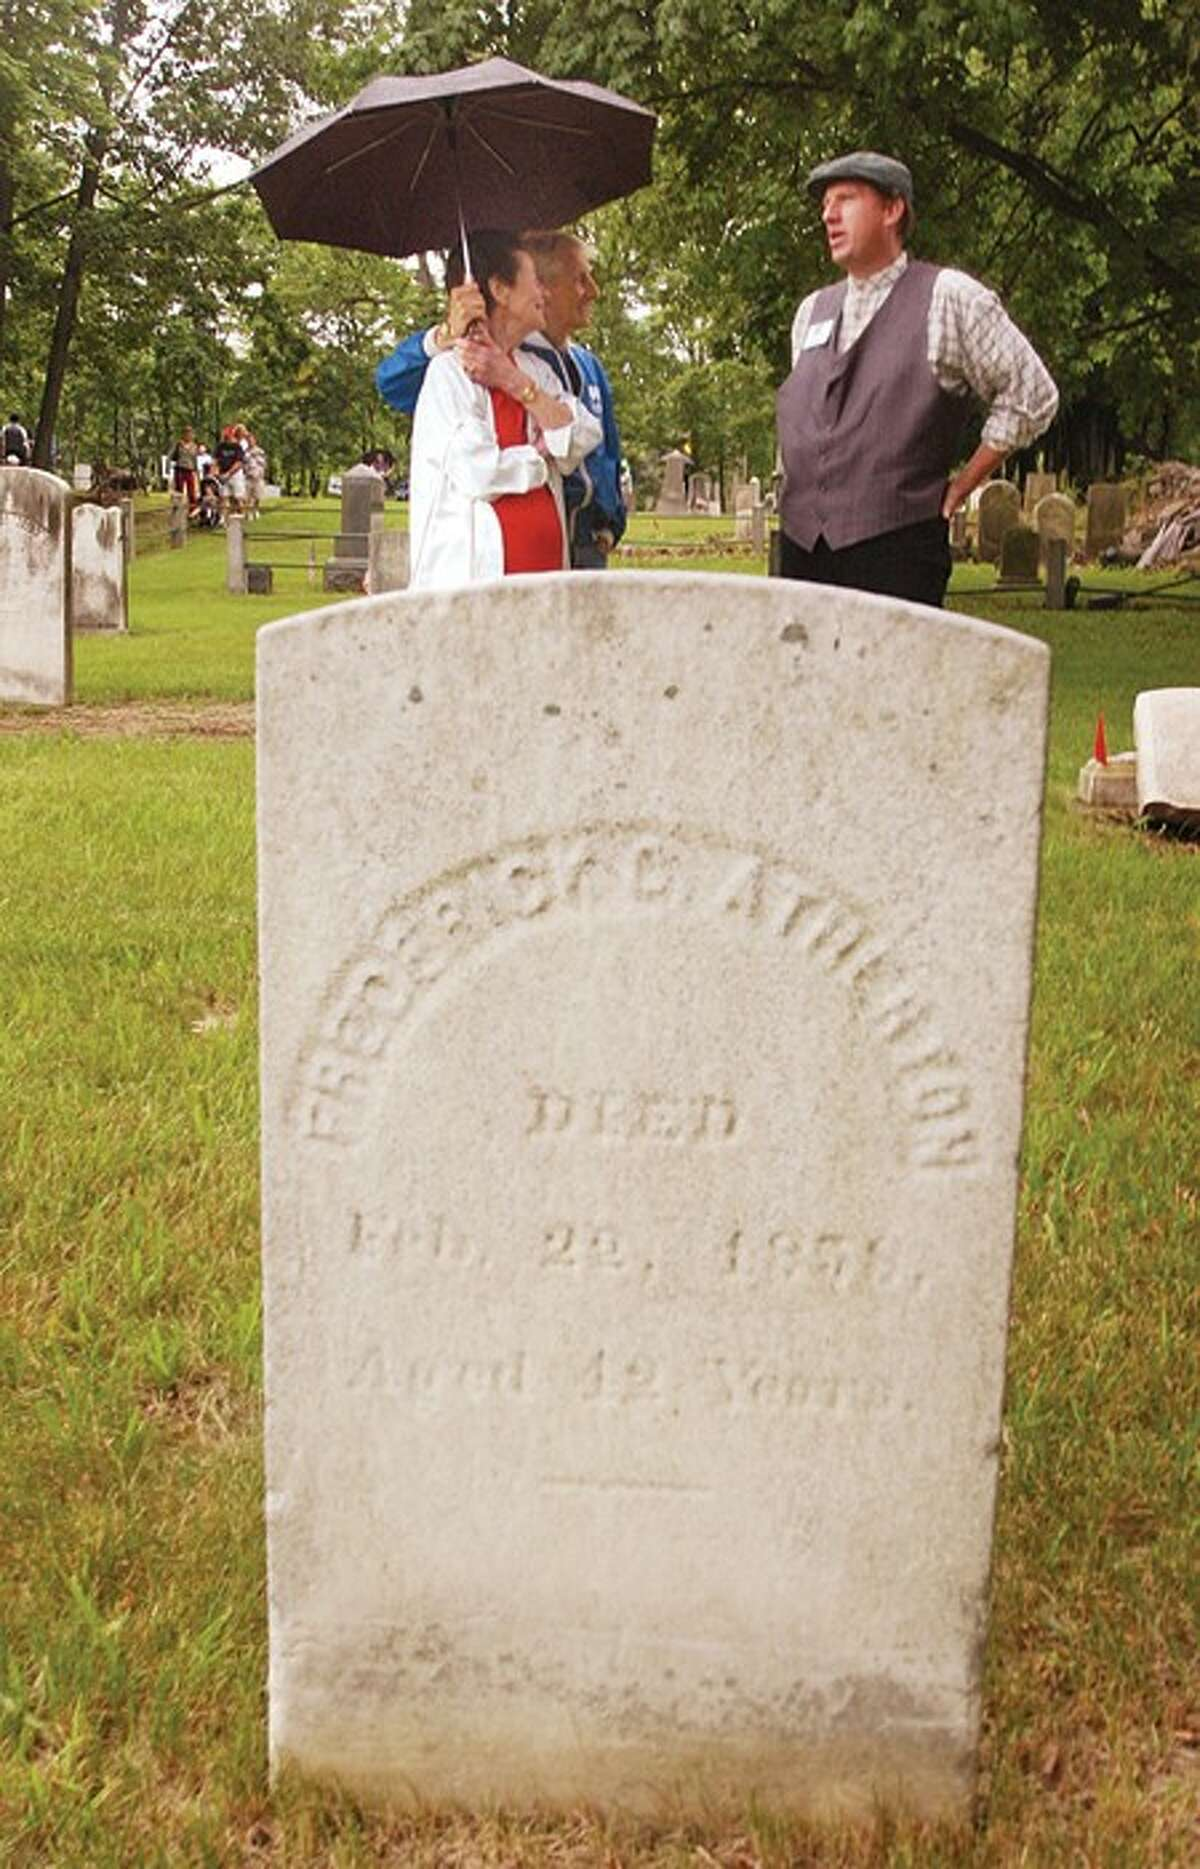 John Einstman portrays Federick Metz who died at the age of 19 when the ship, the Adelphi, sank while talking with Ed and Ann Devingo as part of the Pine Island Historical Cementary Tour during the Party in the Park event at Mathews Park Saturday. Hour photo / Erik Trautmann